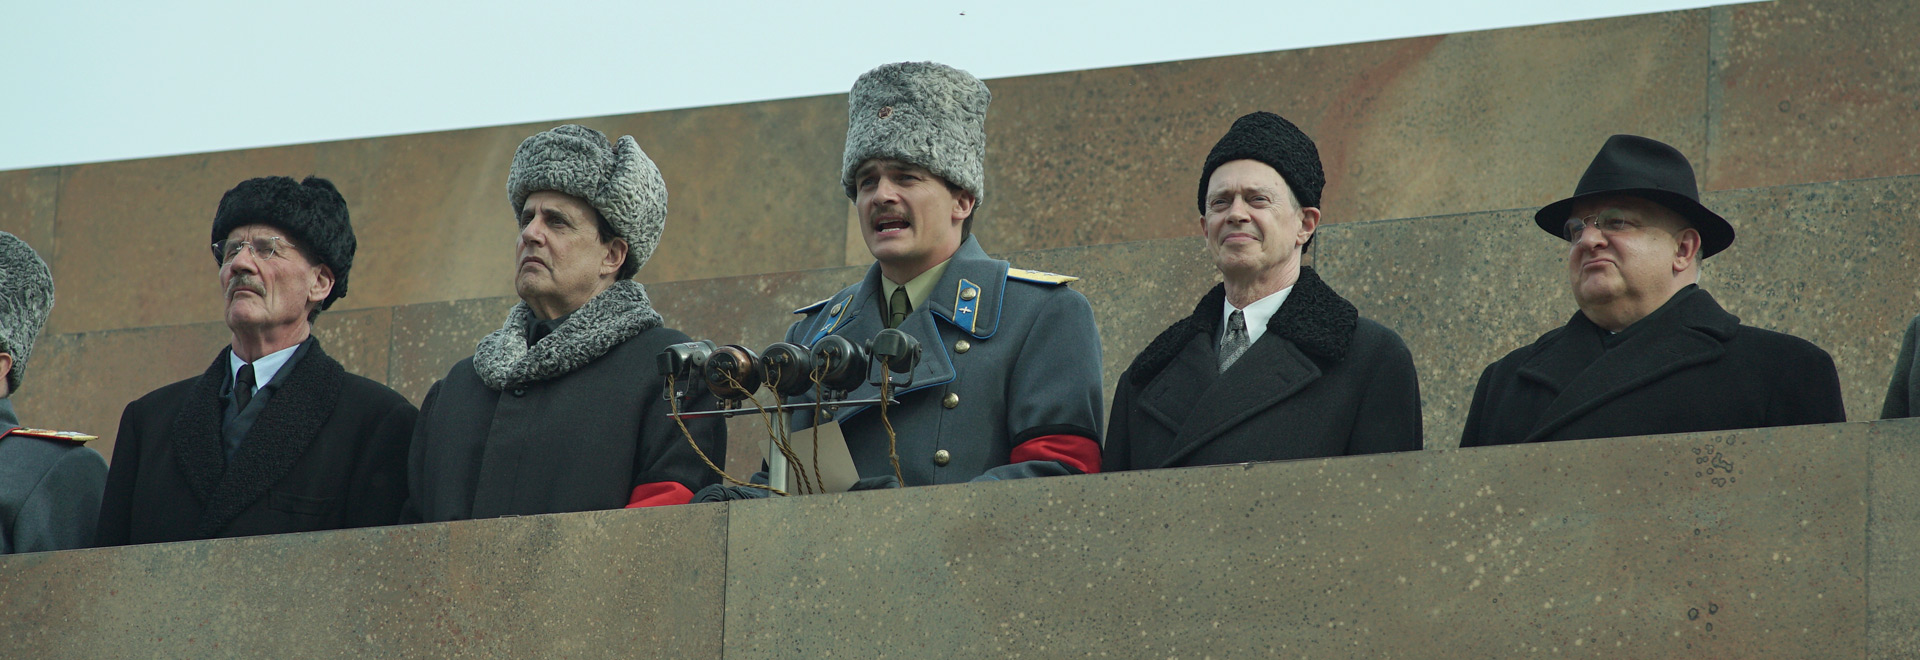 The Death of Stalin - A brilliant and unnerving comedy classic